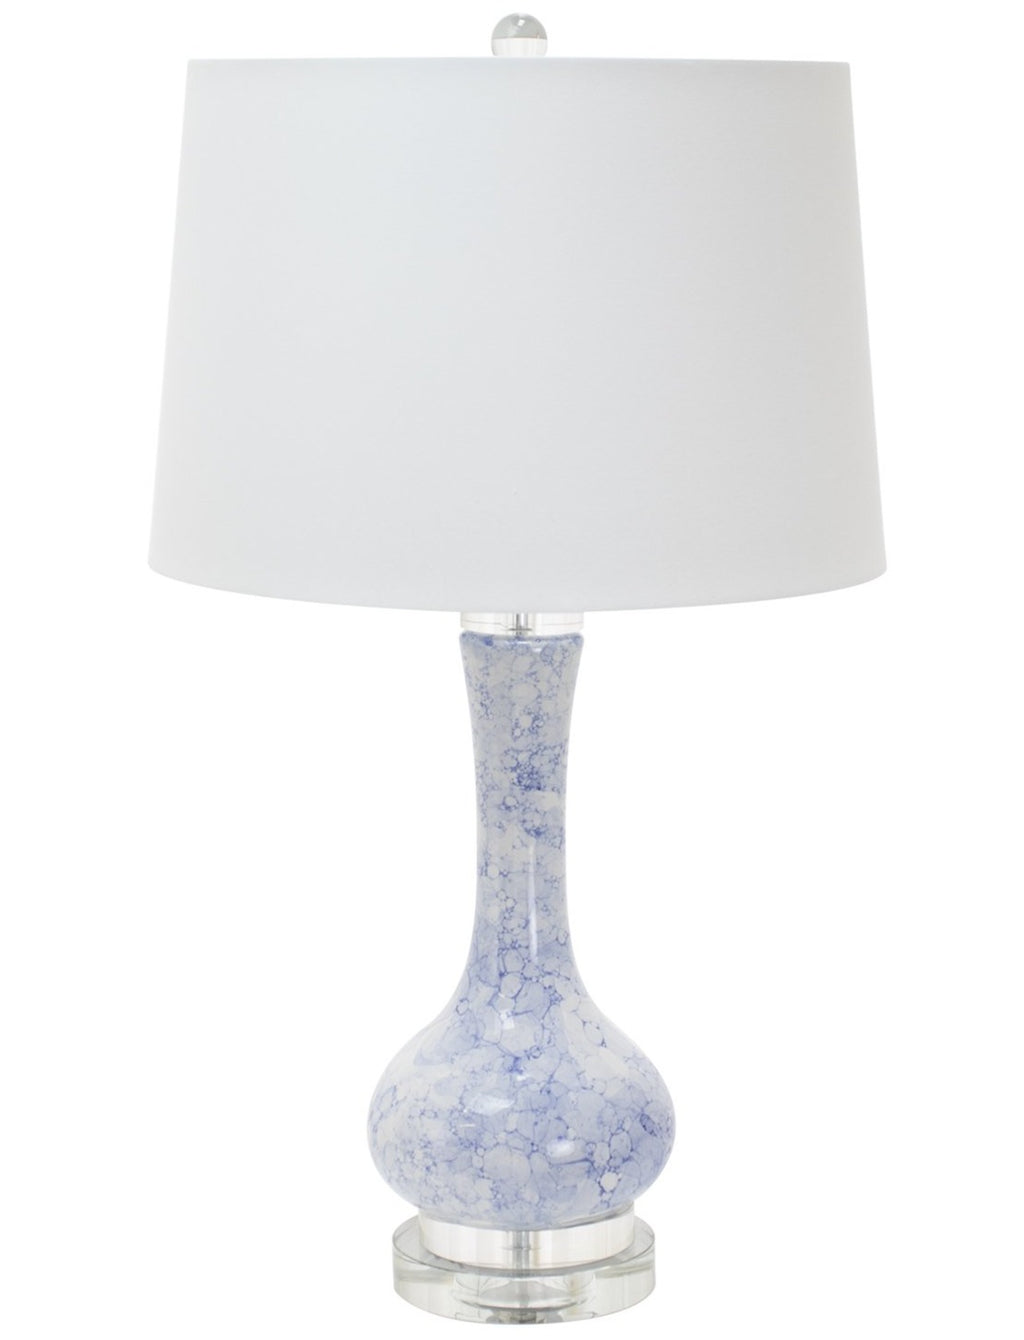 Keaton Table Lamp - NEW - Couture Lamps